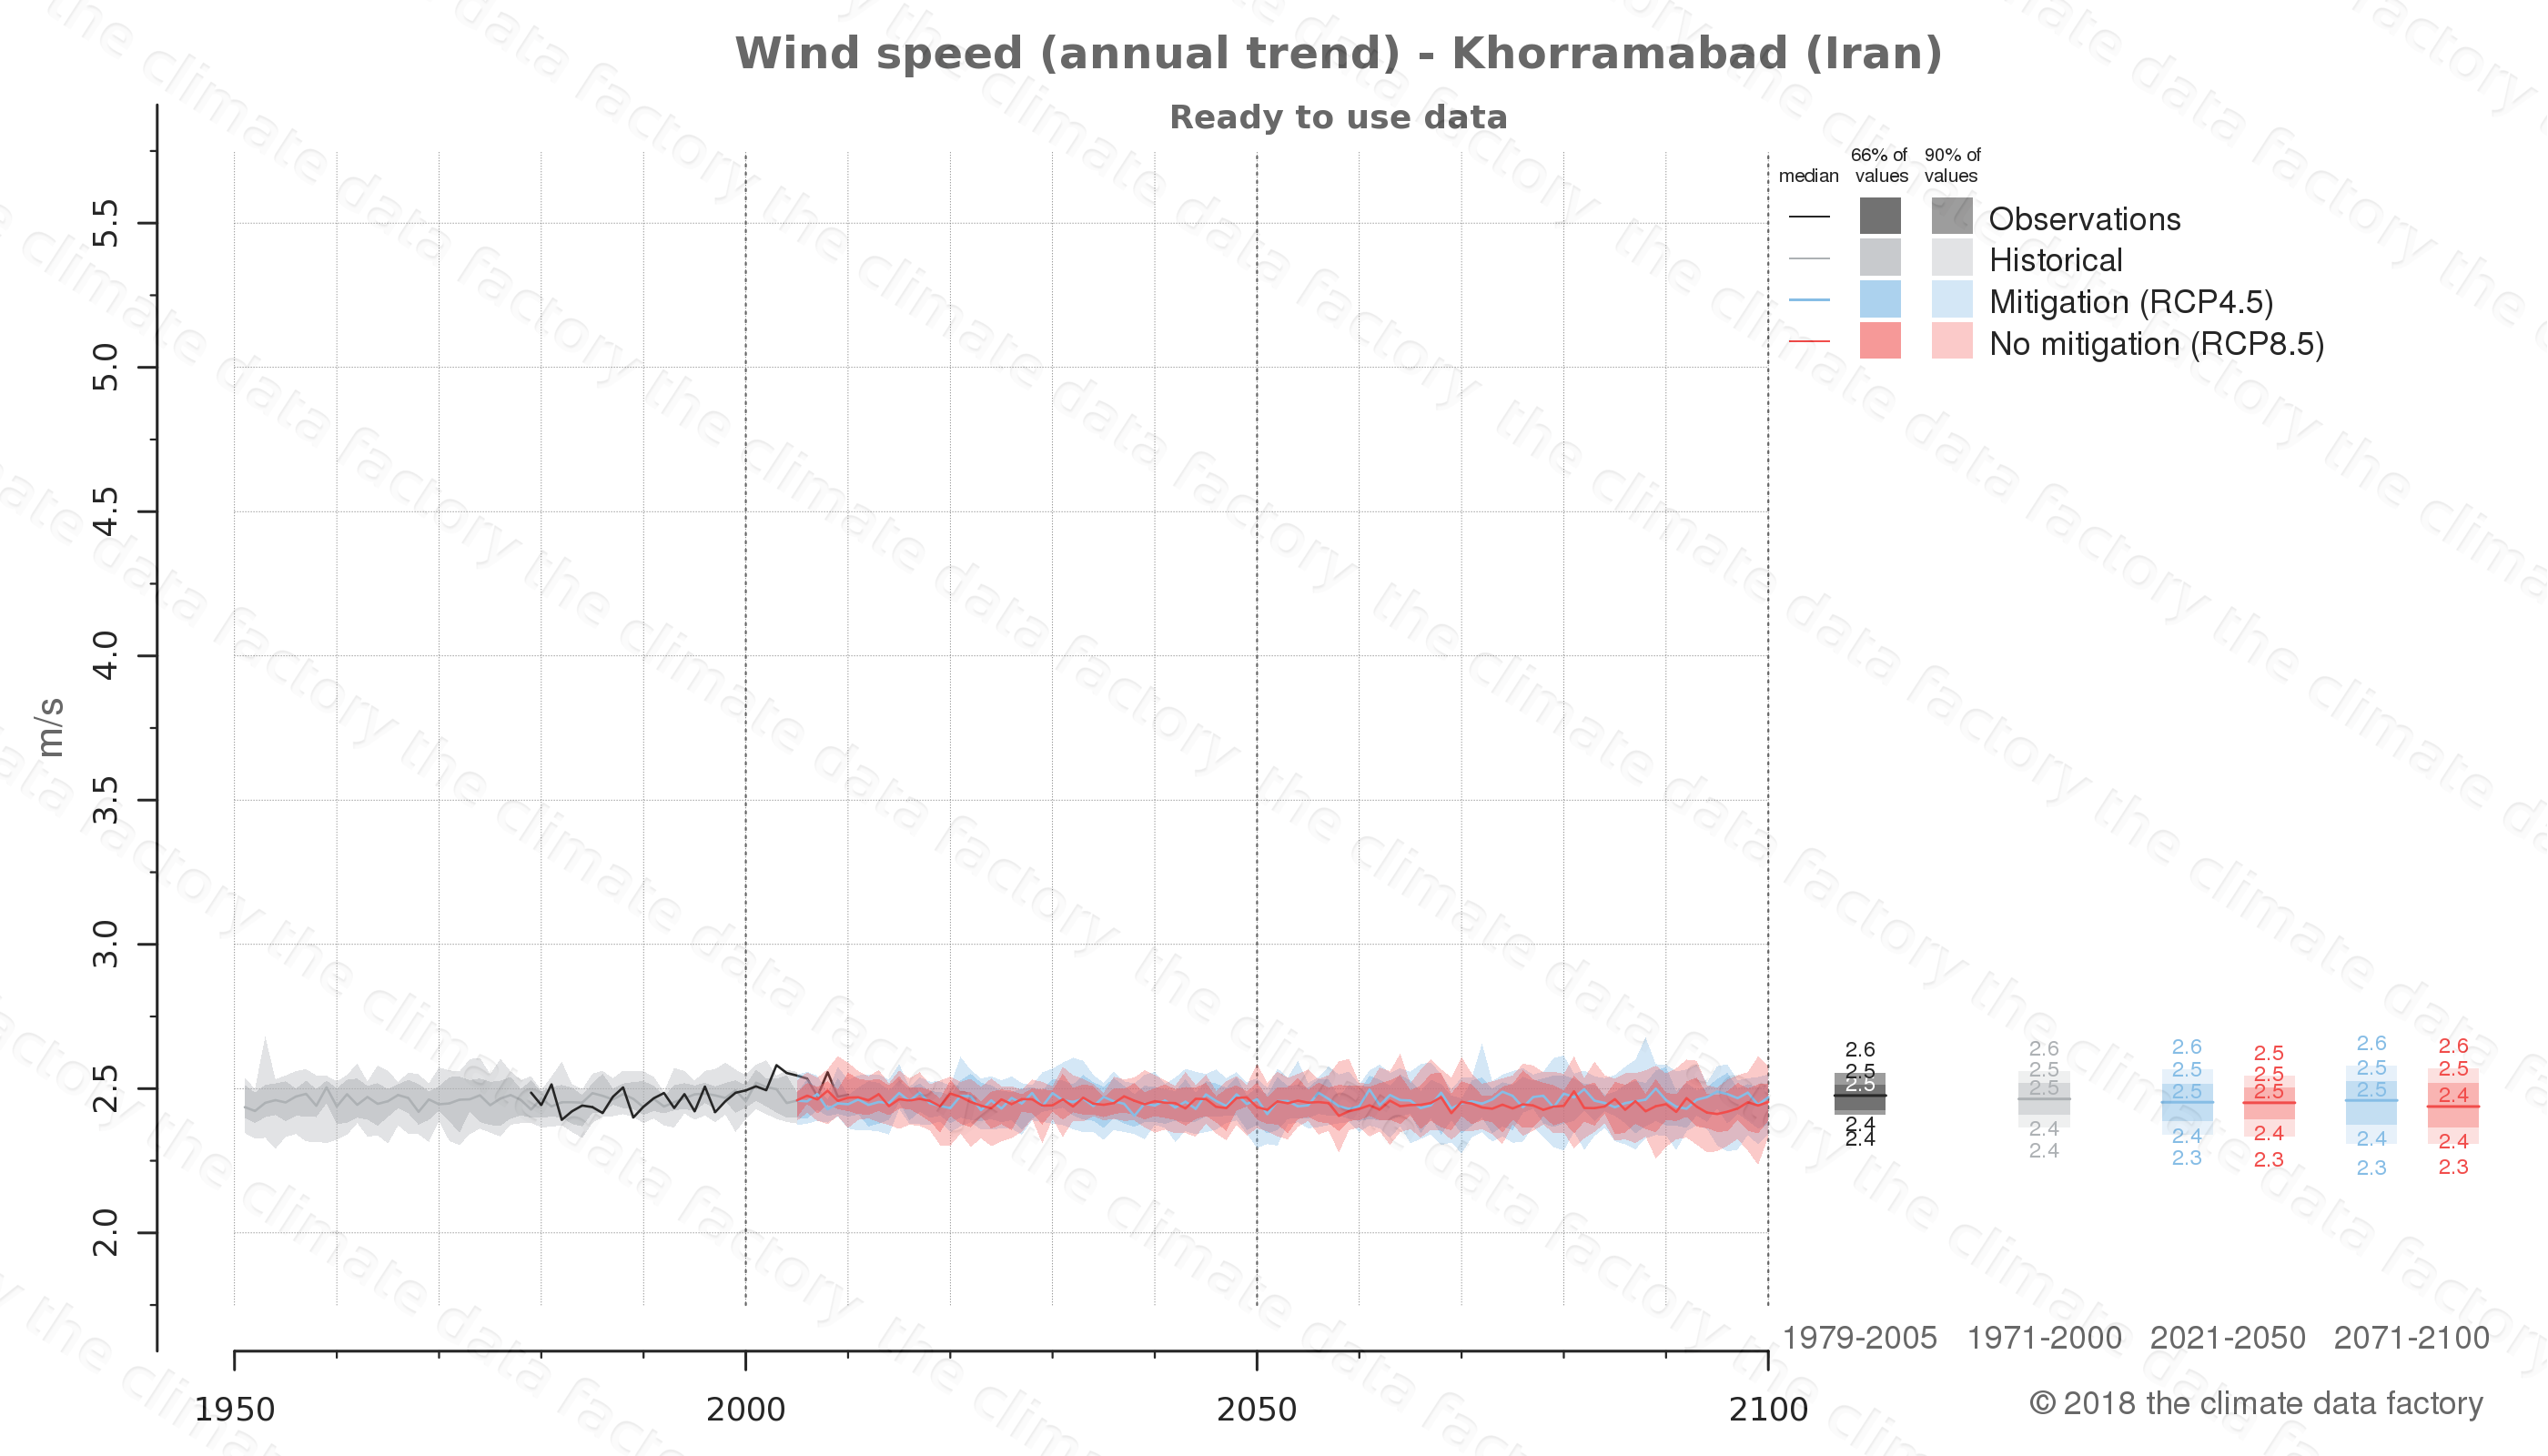 climate change data policy adaptation climate graph city data wind-speed khorramabad iran